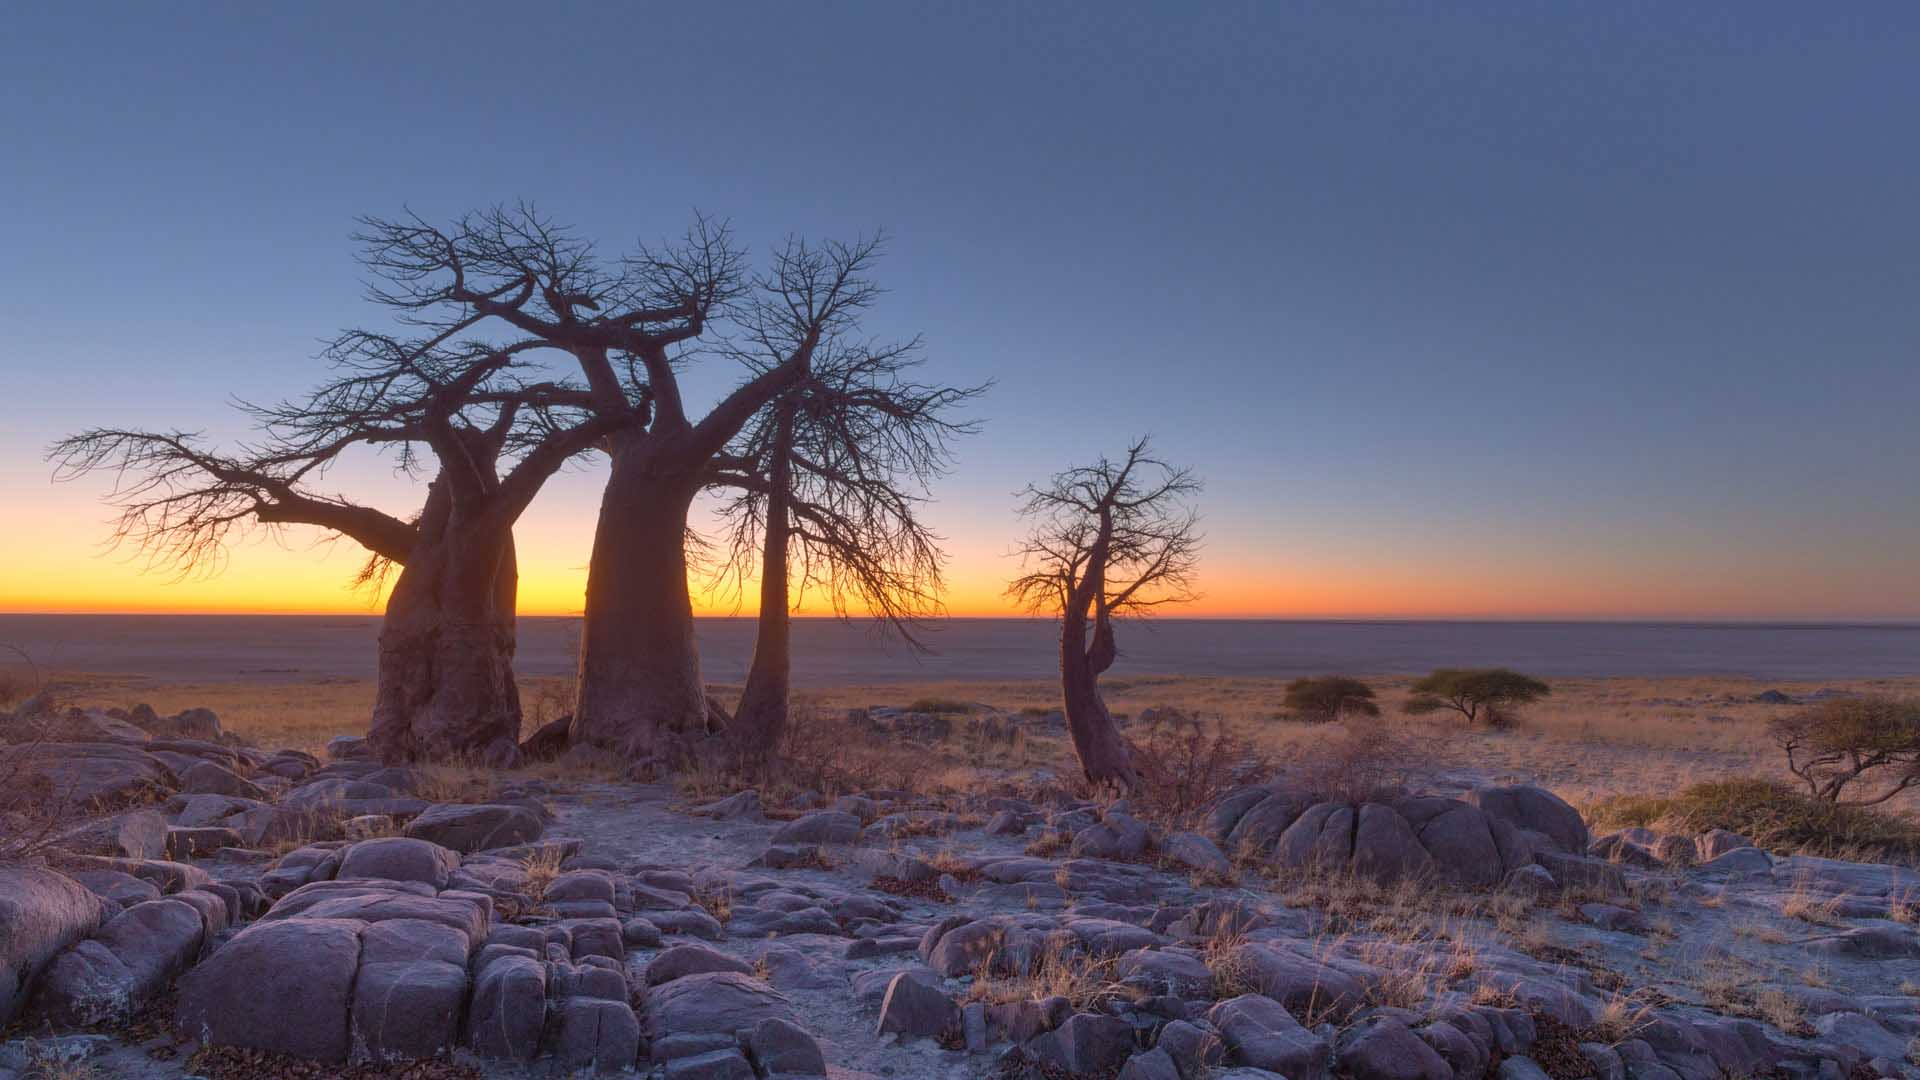 Botswana Wallpapers High Quality Download 1920x1080